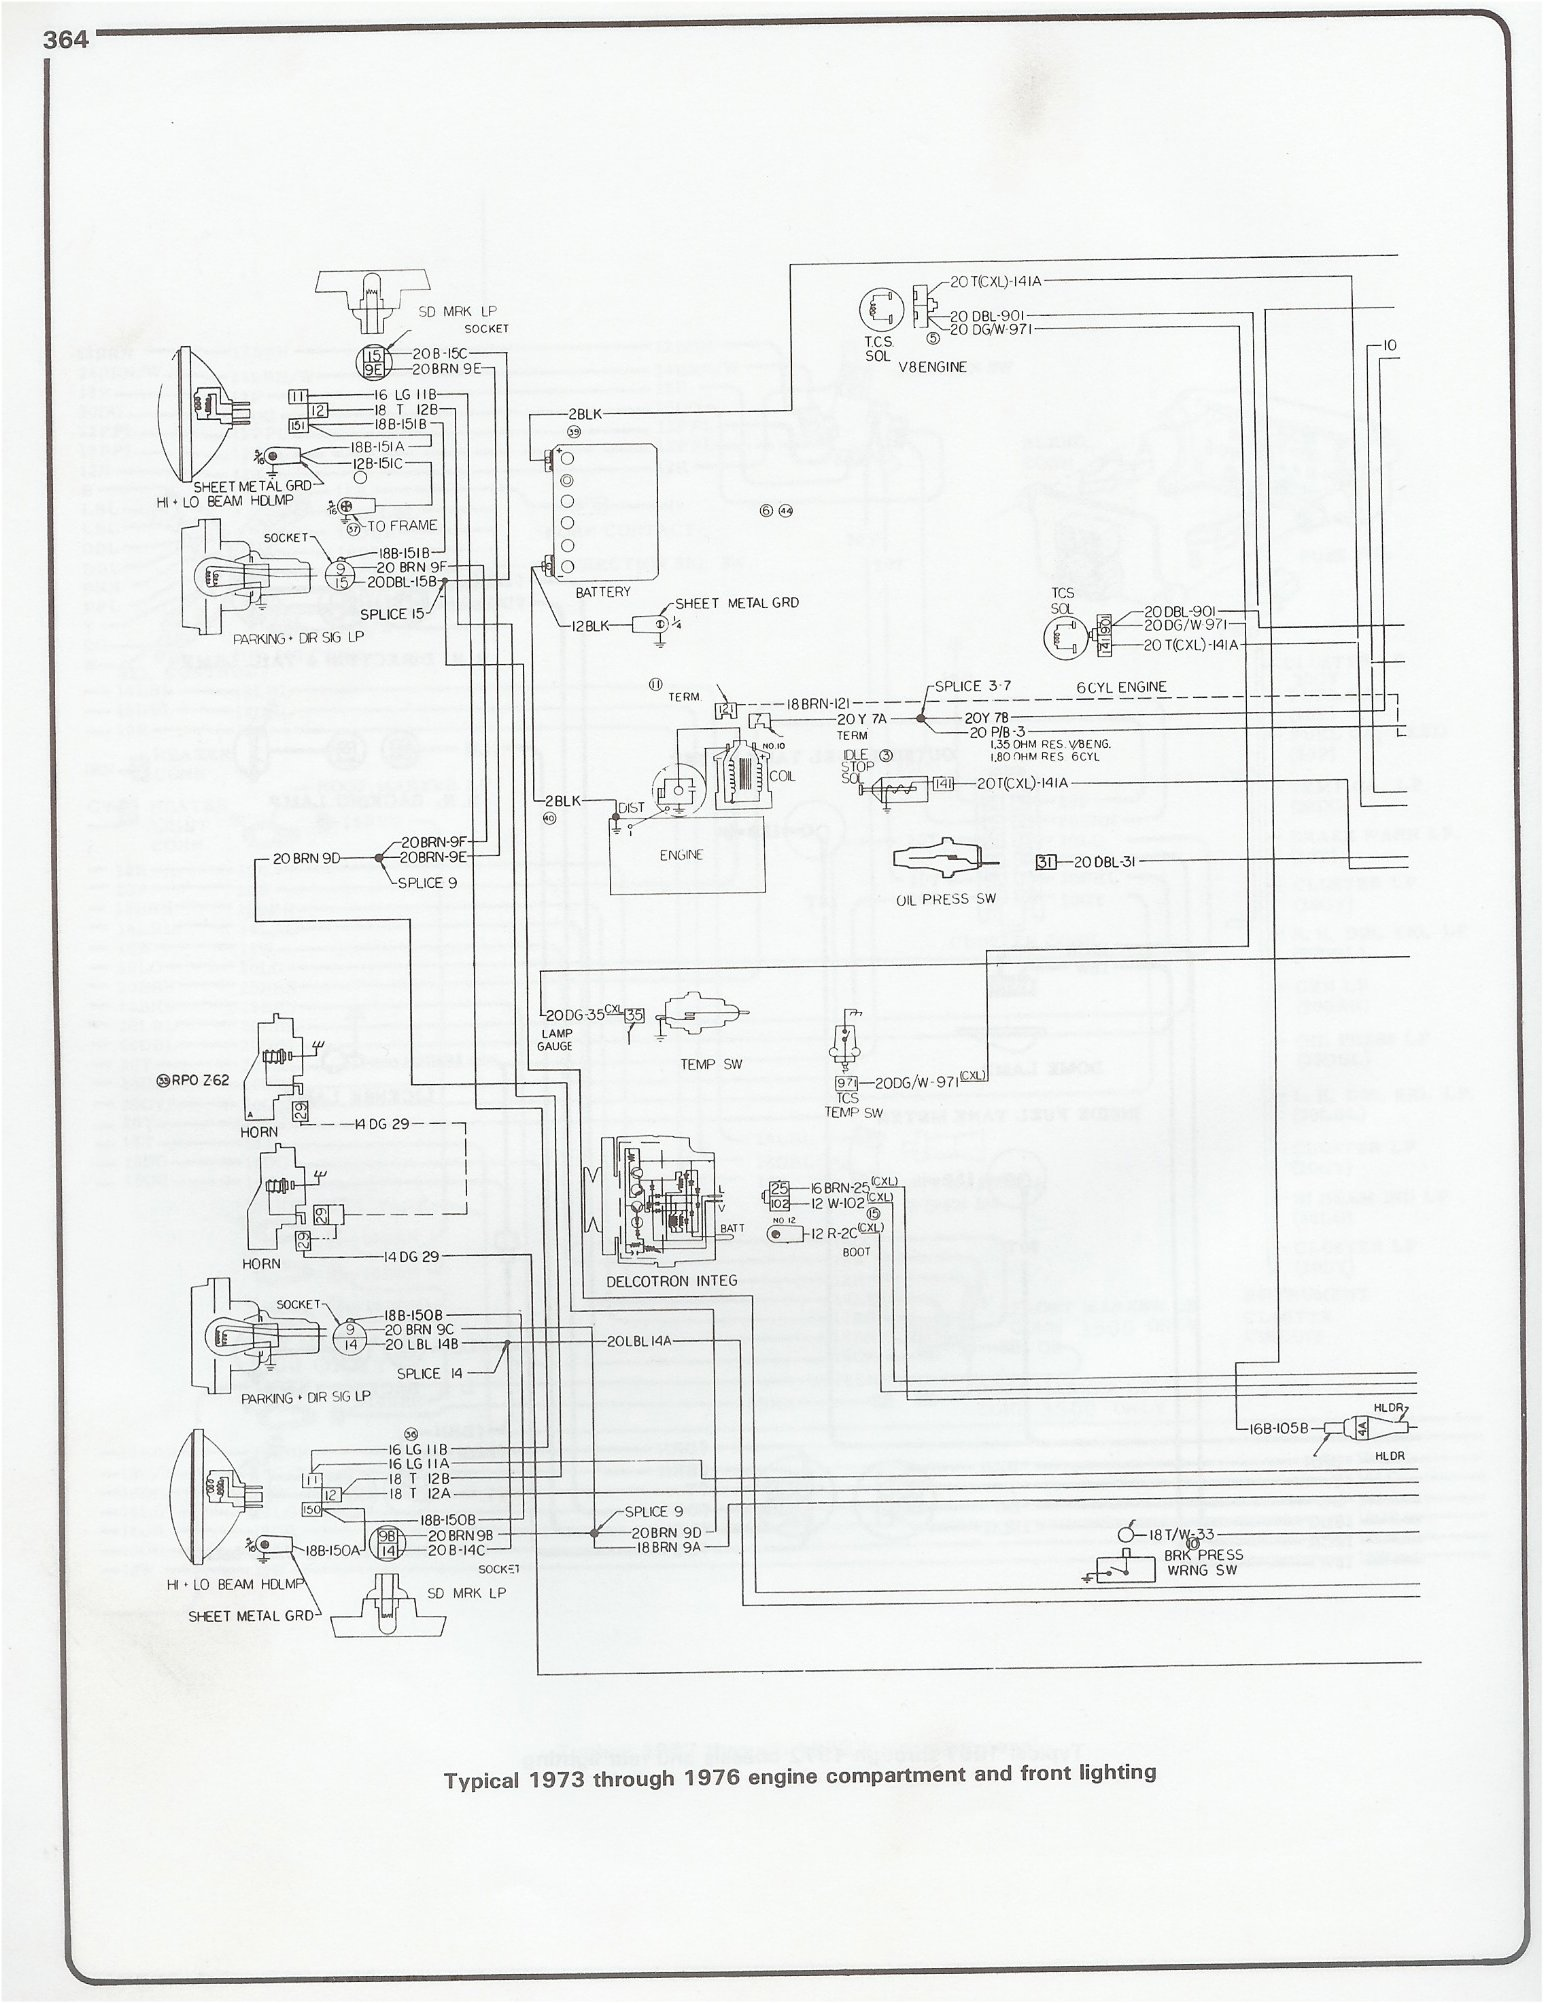 1973 El Camino Fuse Box Wiring Library Chevelle Diagram Diagrams 73 76 Engine And Front Lighting